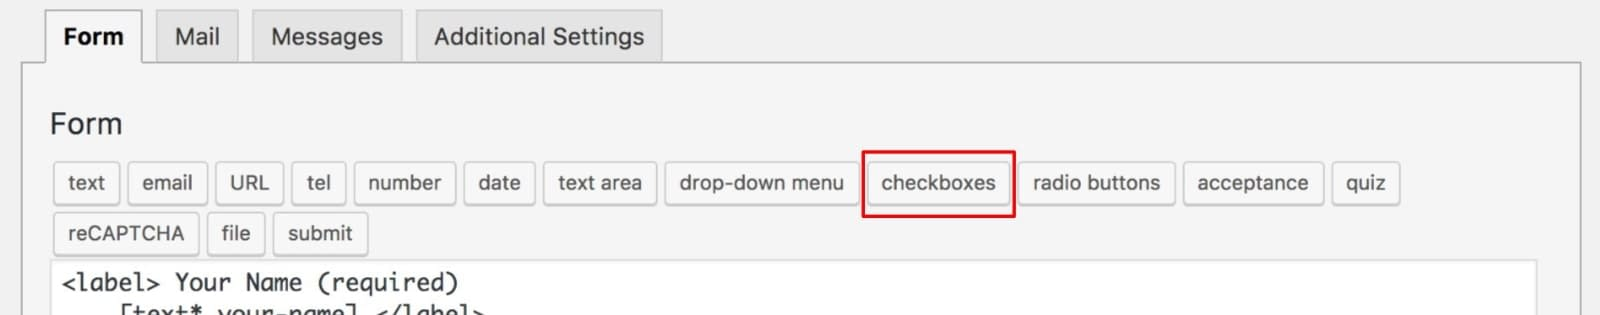 checkbox-button